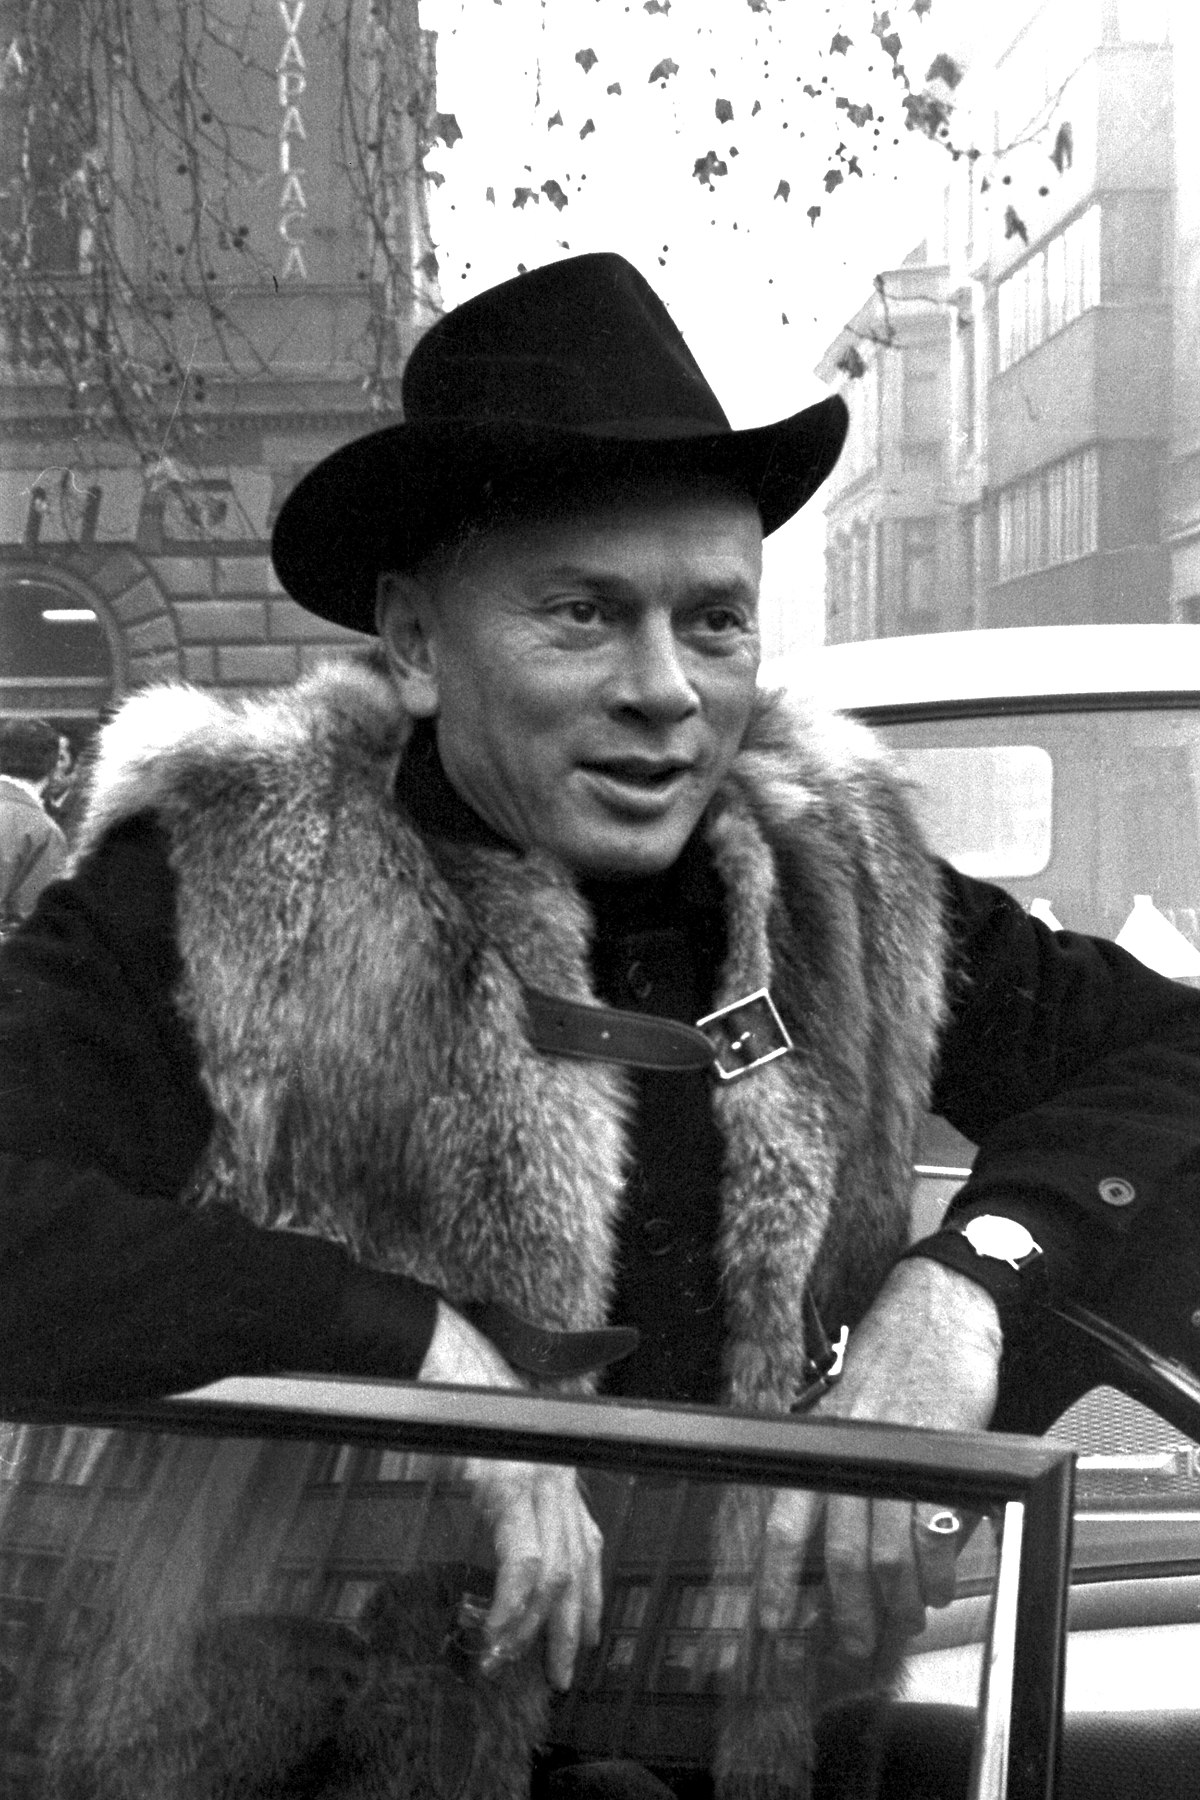 yul brynner charles xavieryul brynner westworld, yul brynner wiki, yul brynner with hair, yul brynner gunslinger, yul brynner kimdir, yul brynner beard, yul brynner father, yul brynner shall we dance, yul brynner house владивосток, yul brynner commercial, yul brynner parents, yul brynner charles xavier, yul brynner don't smoke, yul brynner movie the king, yul brynner style, yul brynner sister, yul brynner oscar 1957, yul brynner films, yul brynner ed harris, yul brynner a photographic journey book